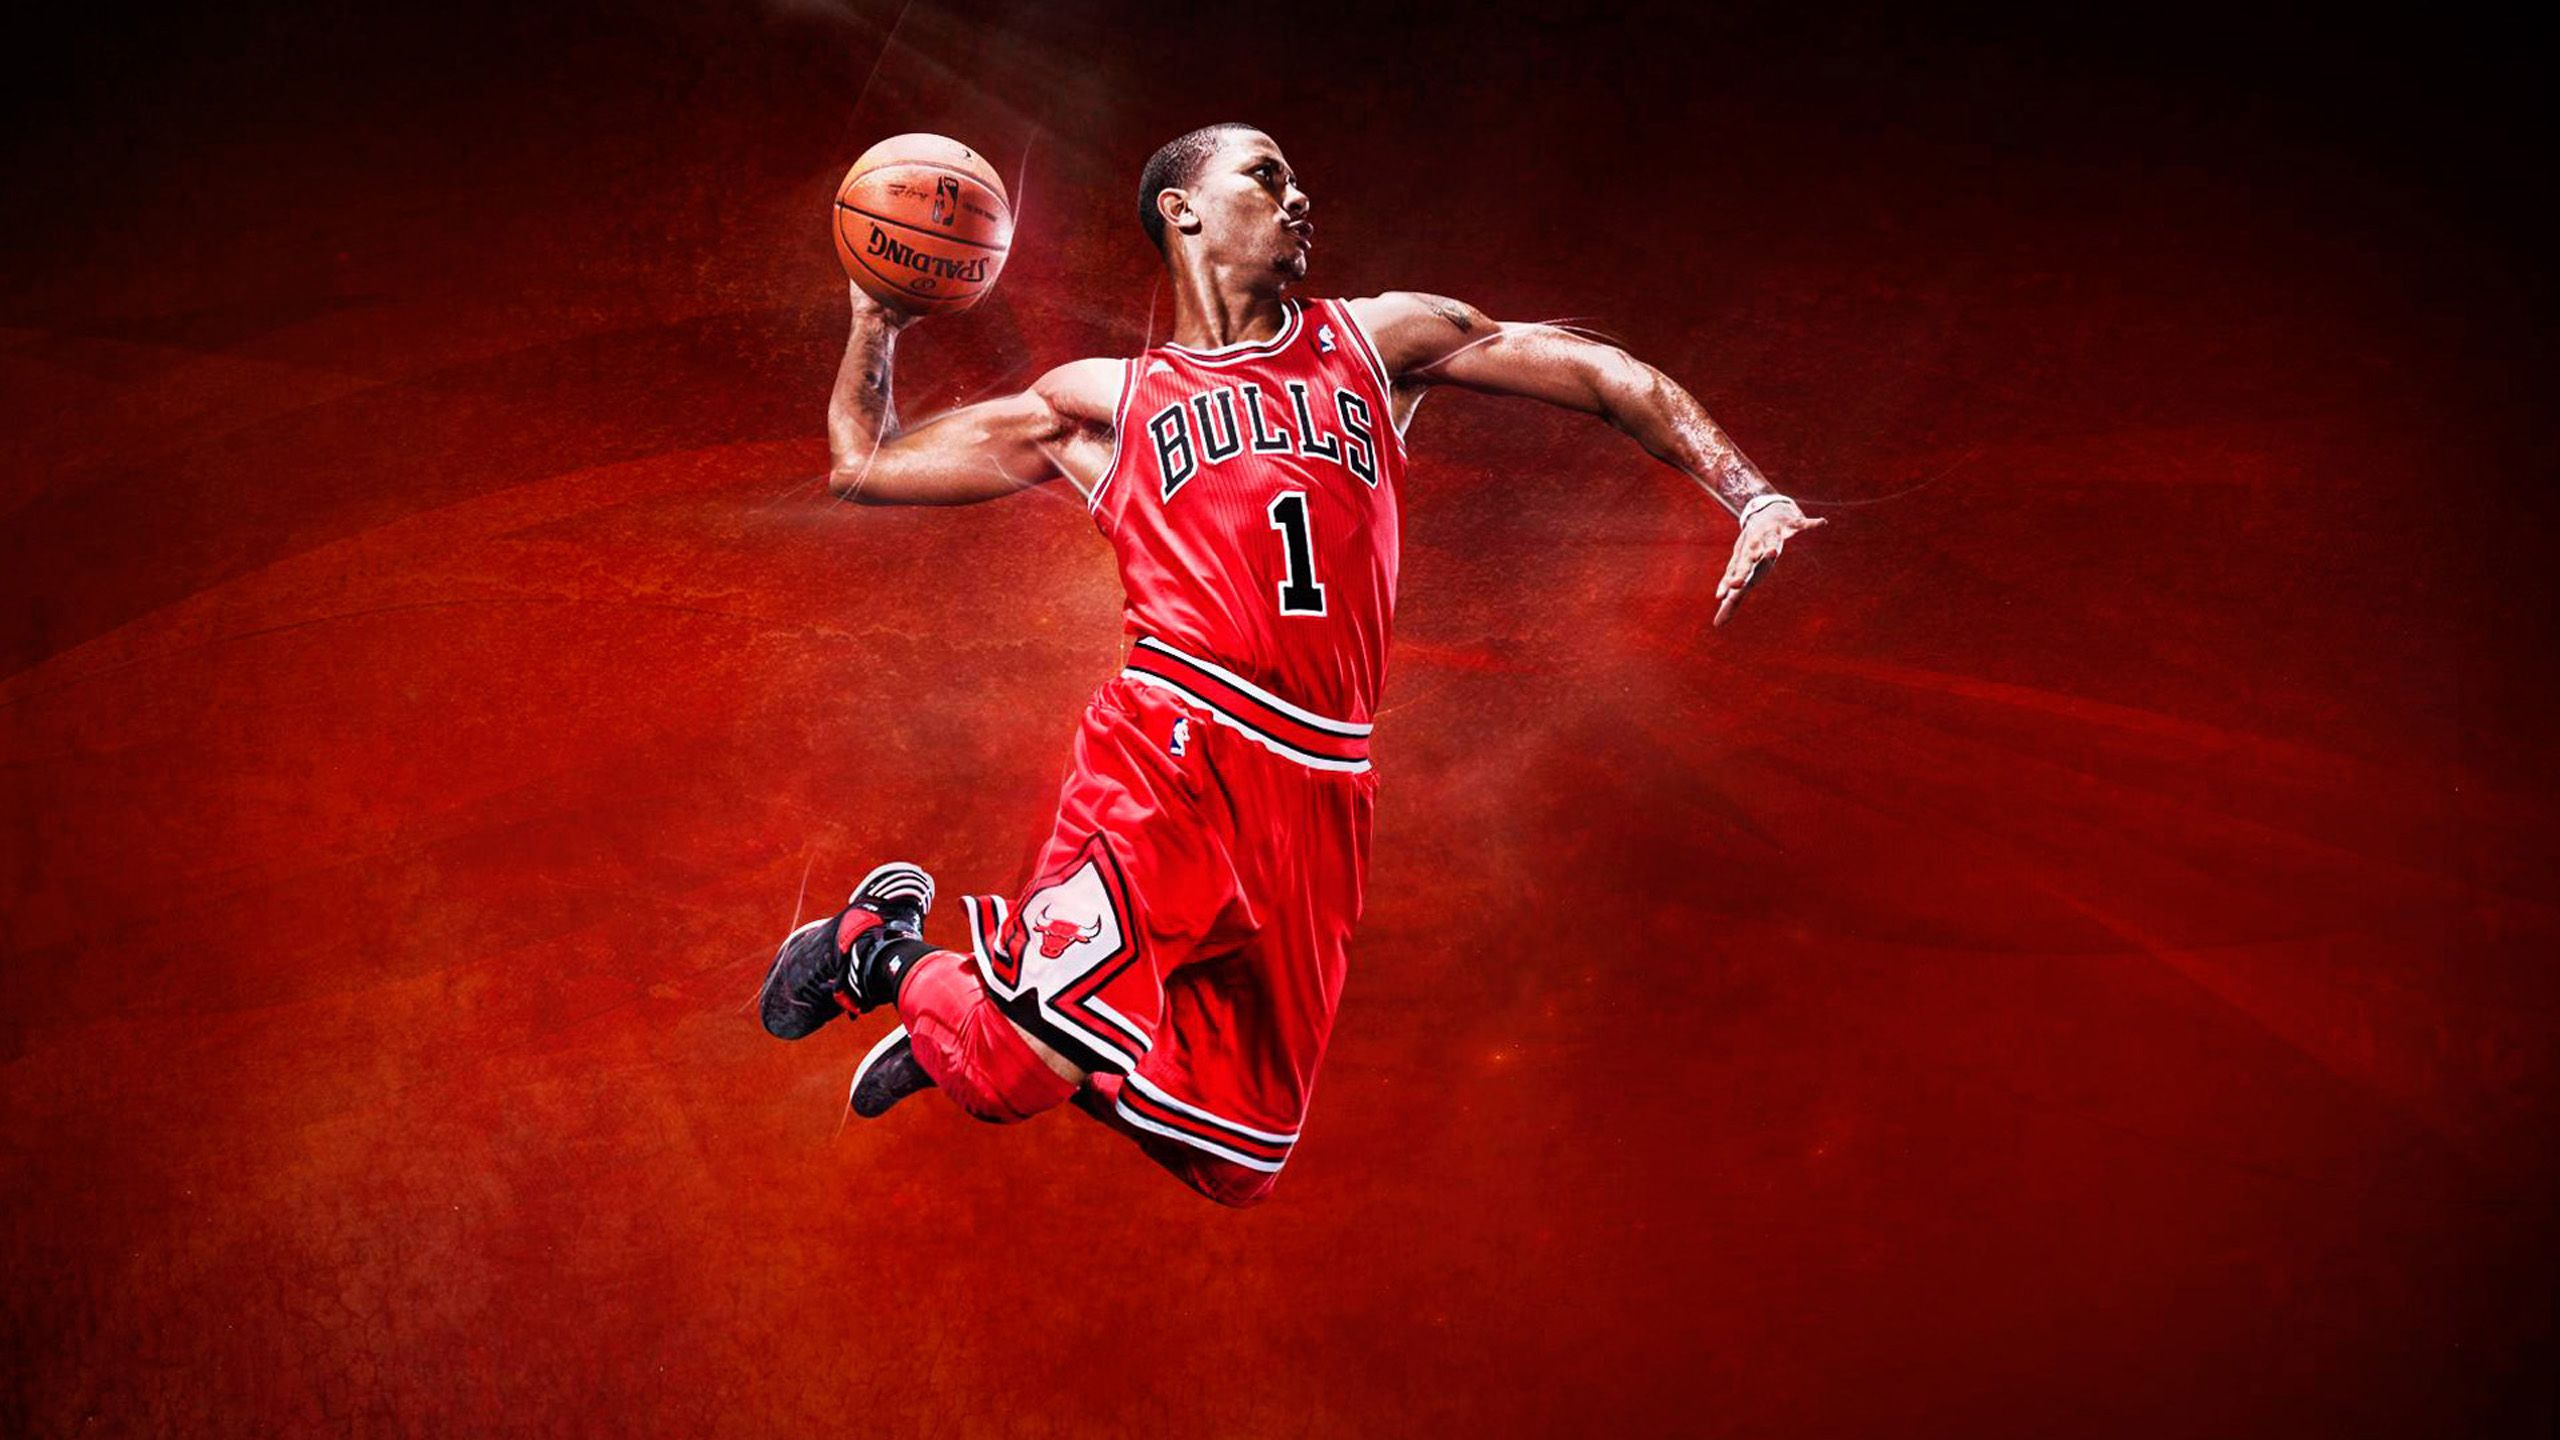 1080px350 Dope Basketball Wallpaper: Cool Basketball Wallpapers Hd 2560×1440 Awesome Basketball